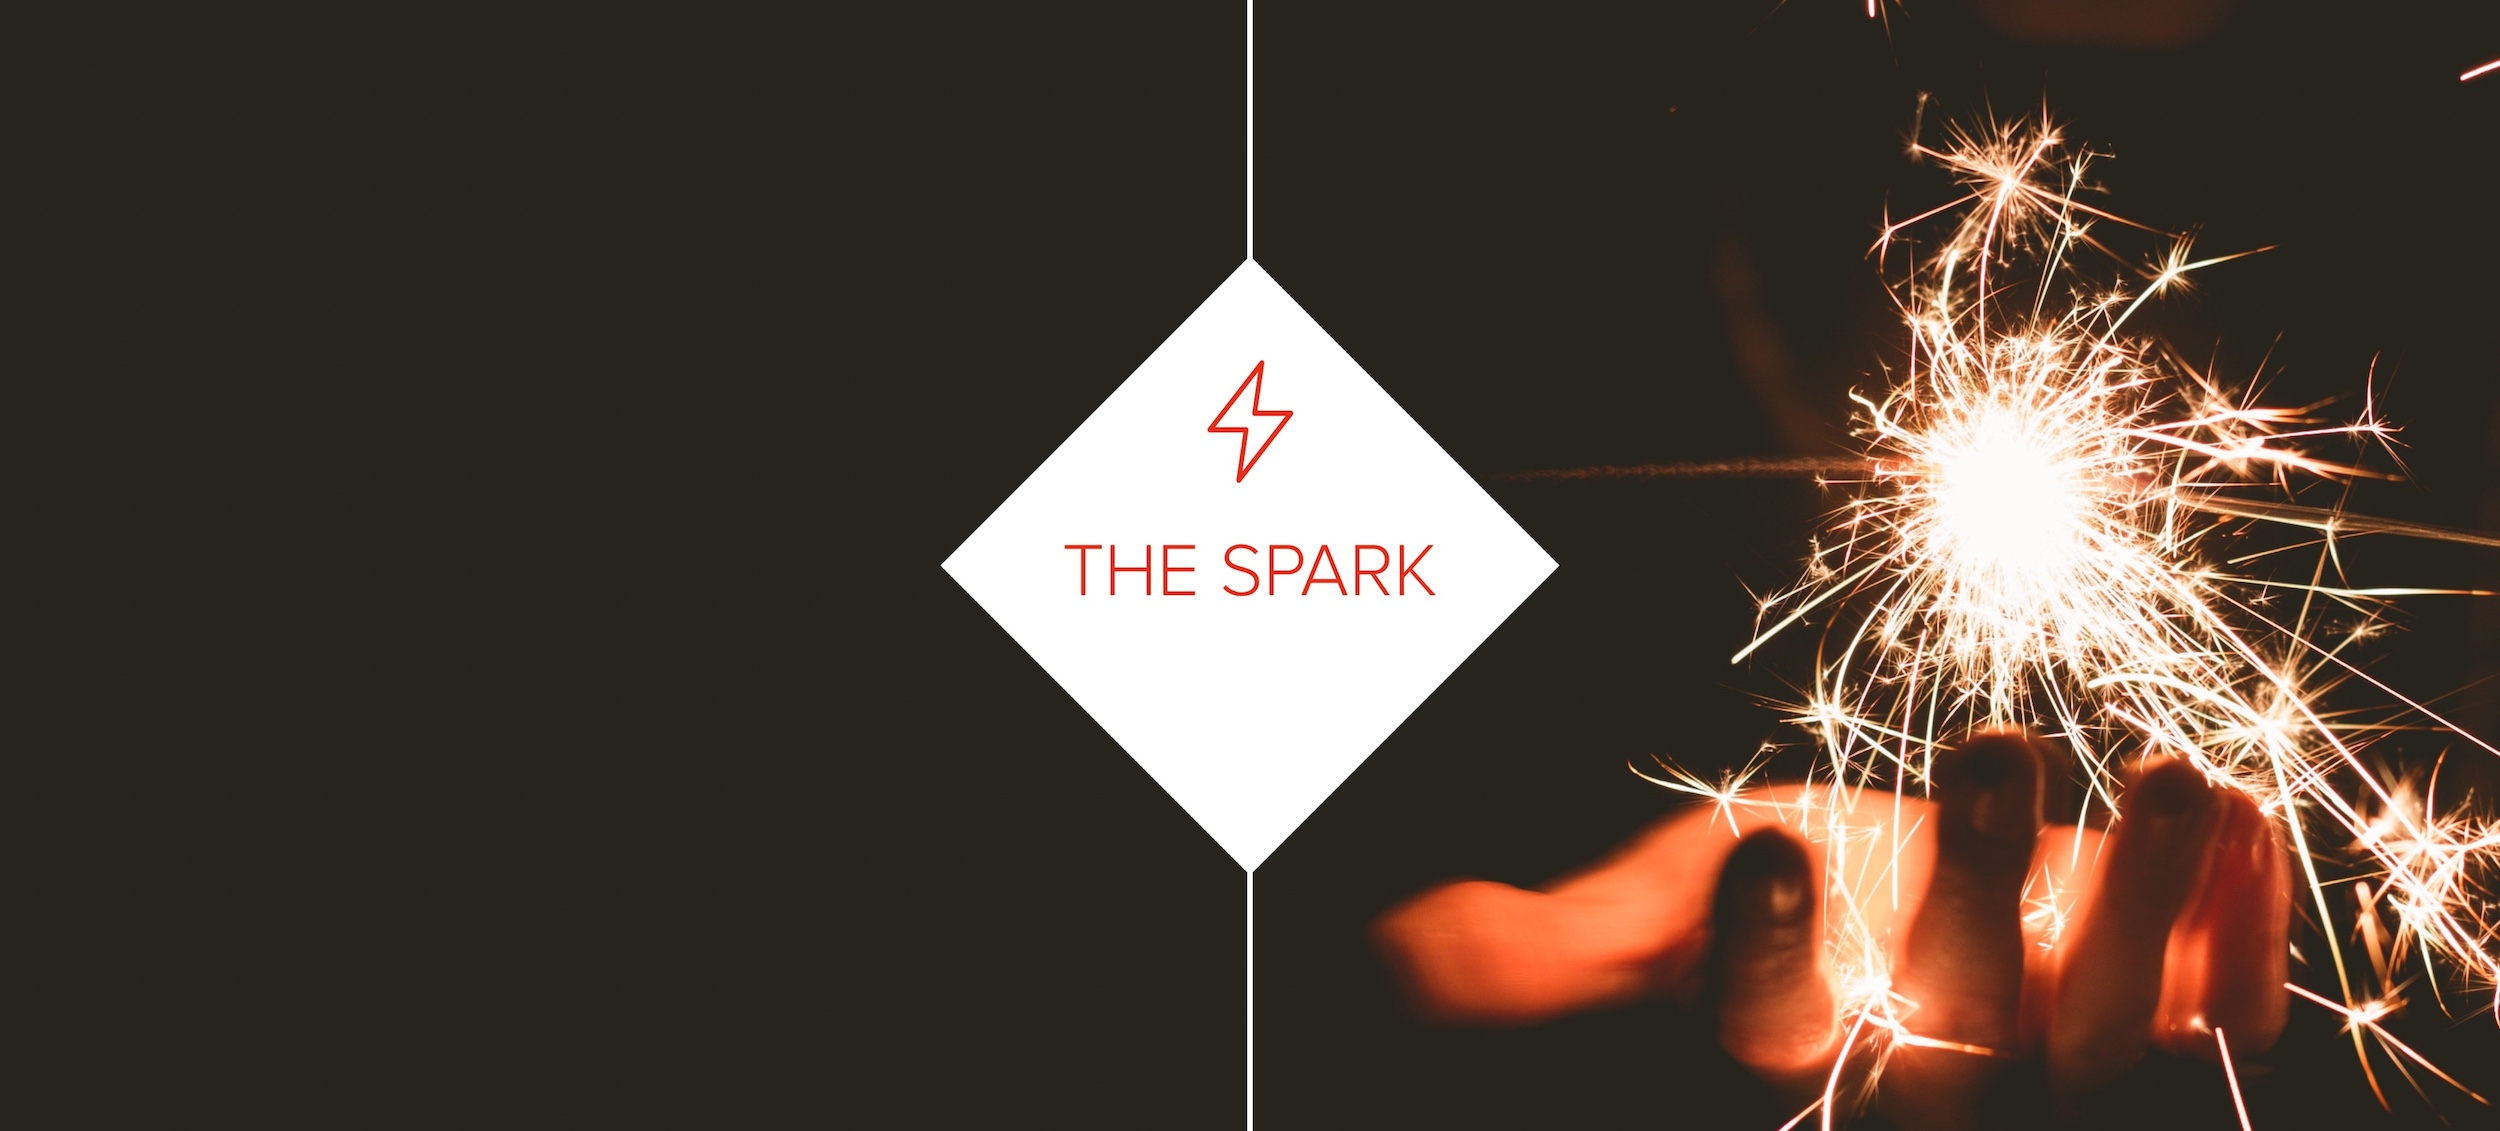 The creative spark is where it all begins. An idea, an opportunity, or a solution. We can help you harness that ethereal energy whether you're a startup getting your first product out out the door, or an established business looking to do a new launch. We're experts at turning ideas into amazing digital products.